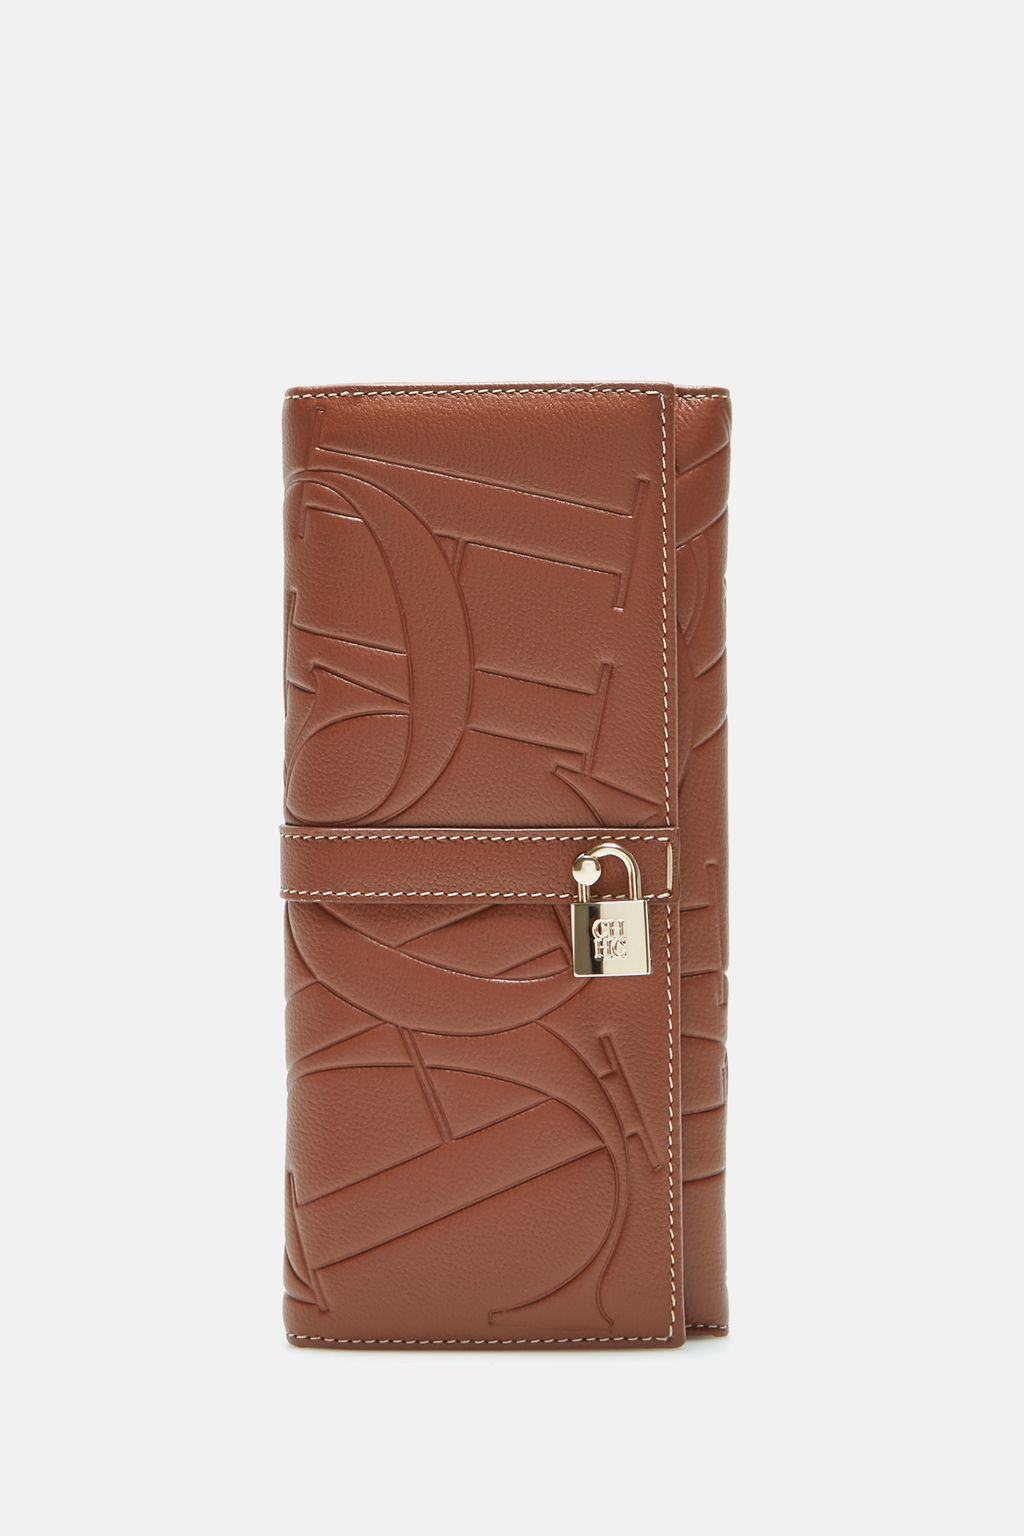 Factory Locked | American wallet with removable coin purse